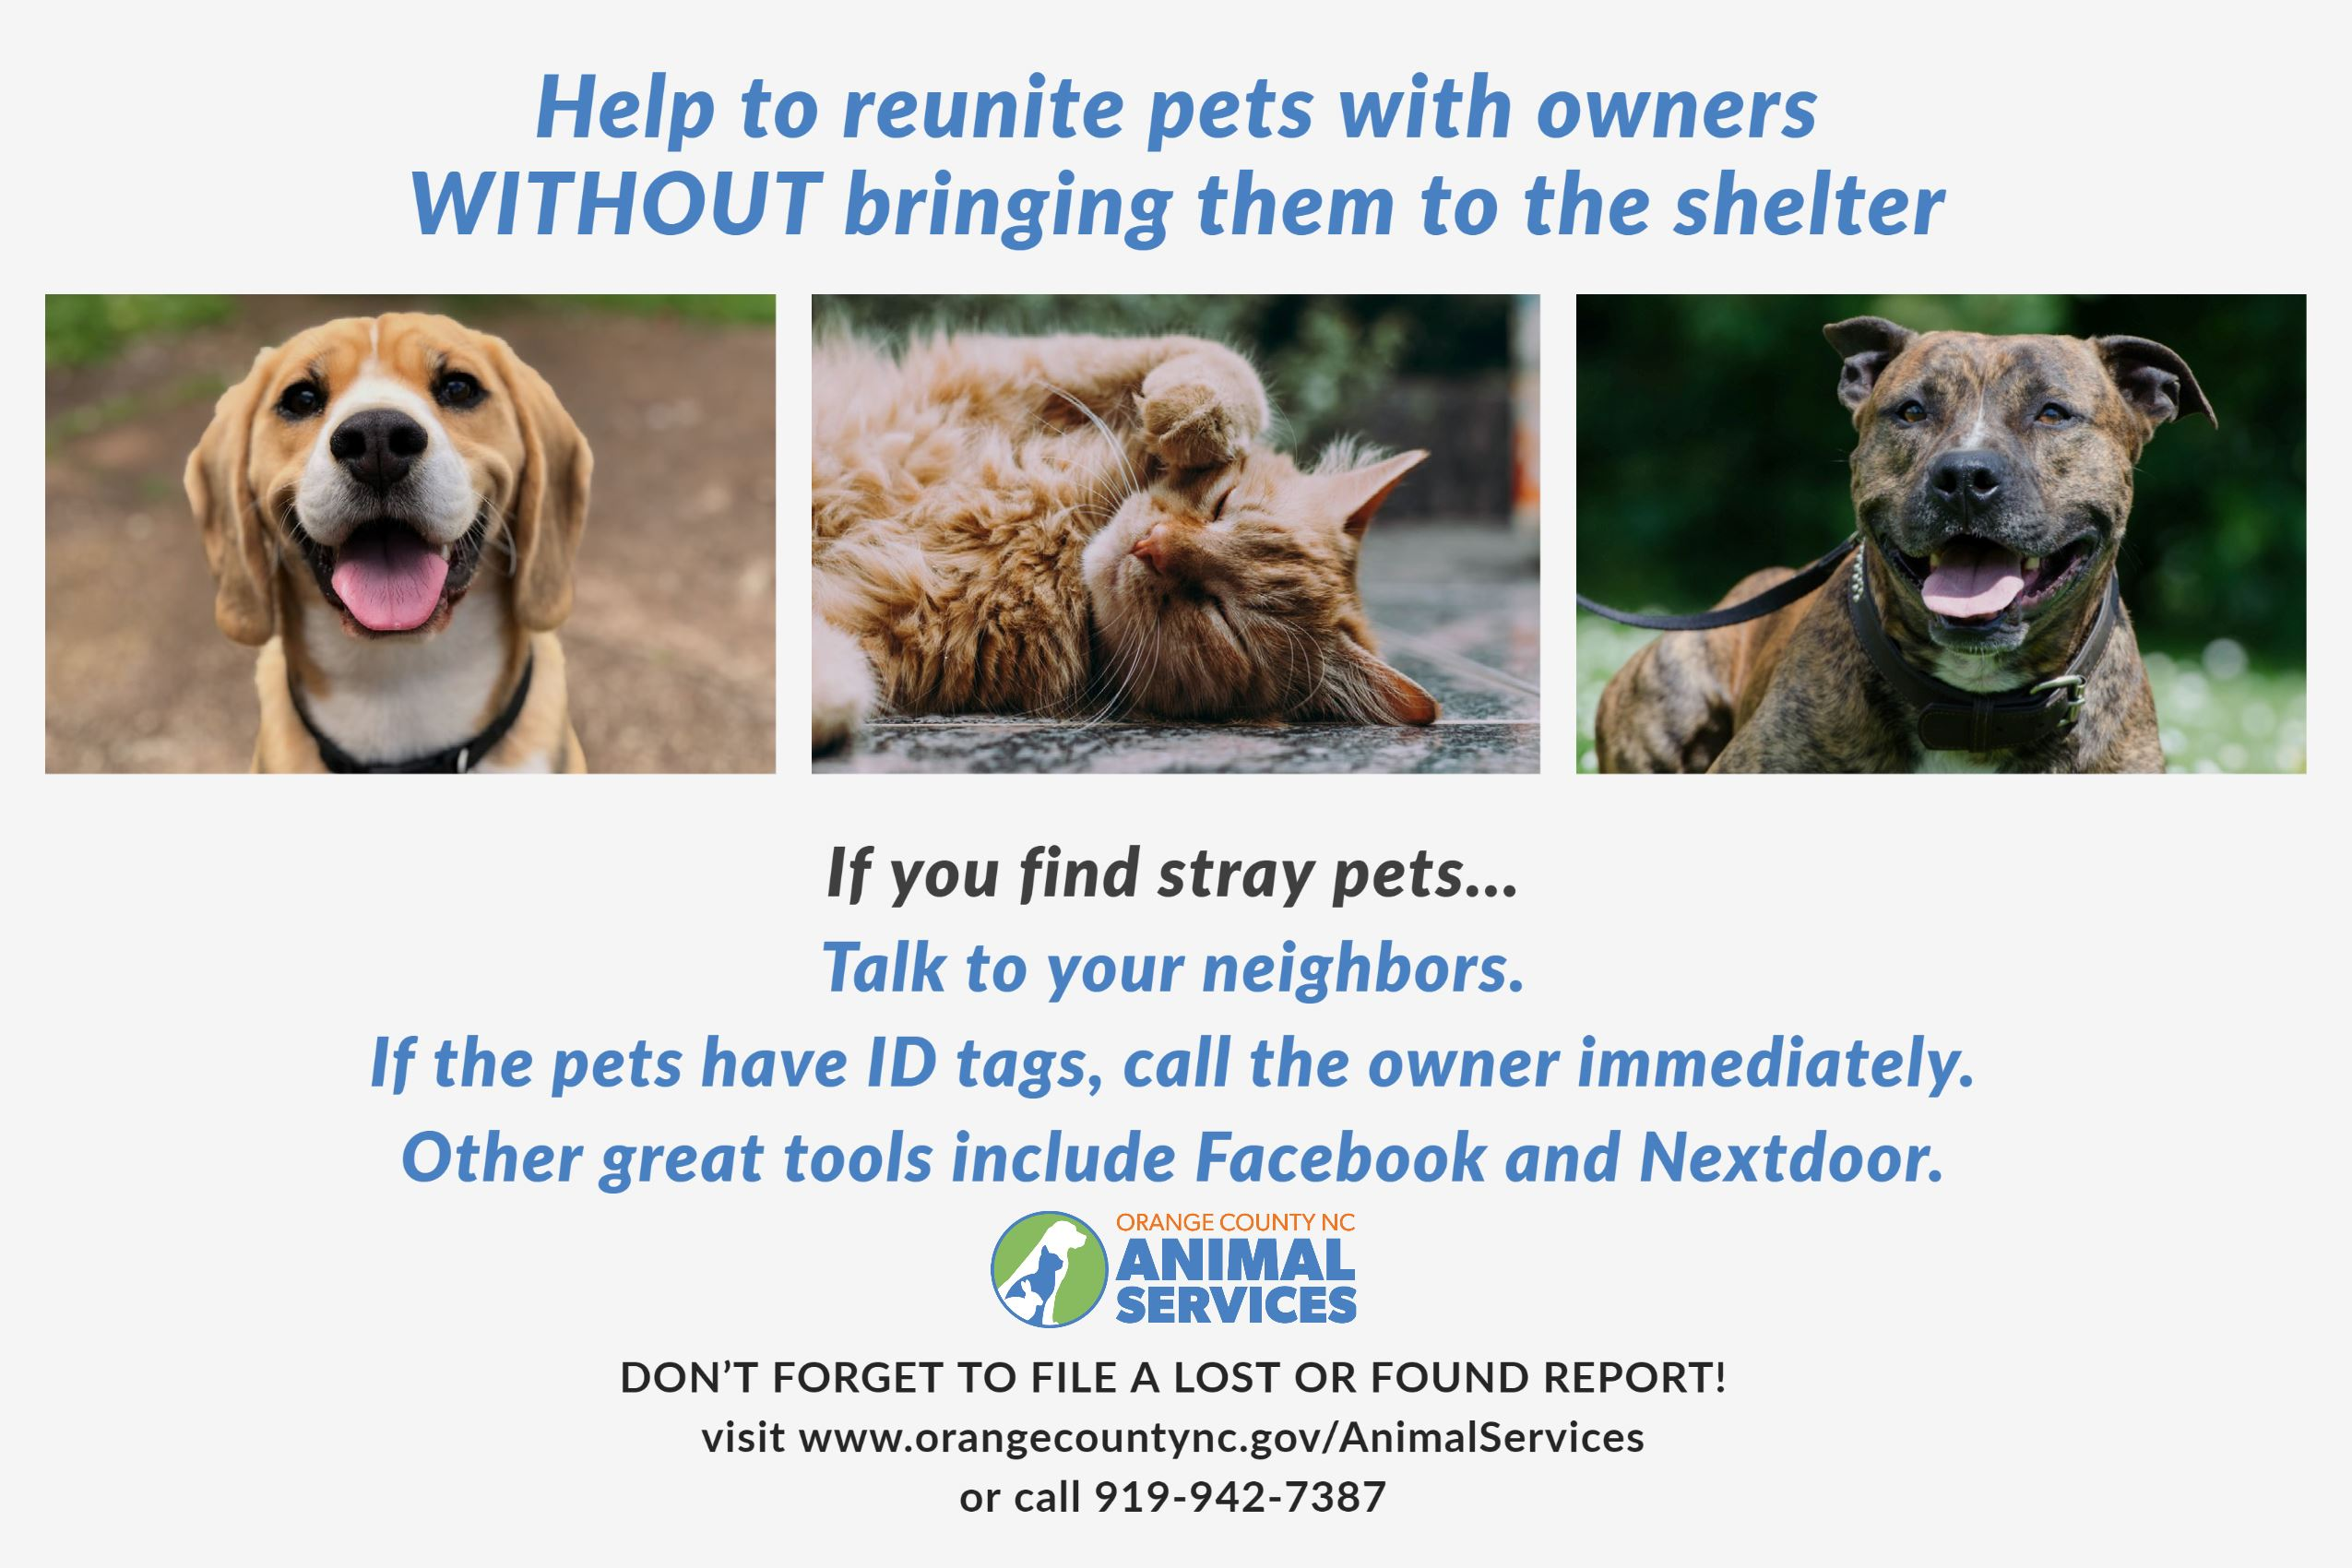 Help animals find their owners